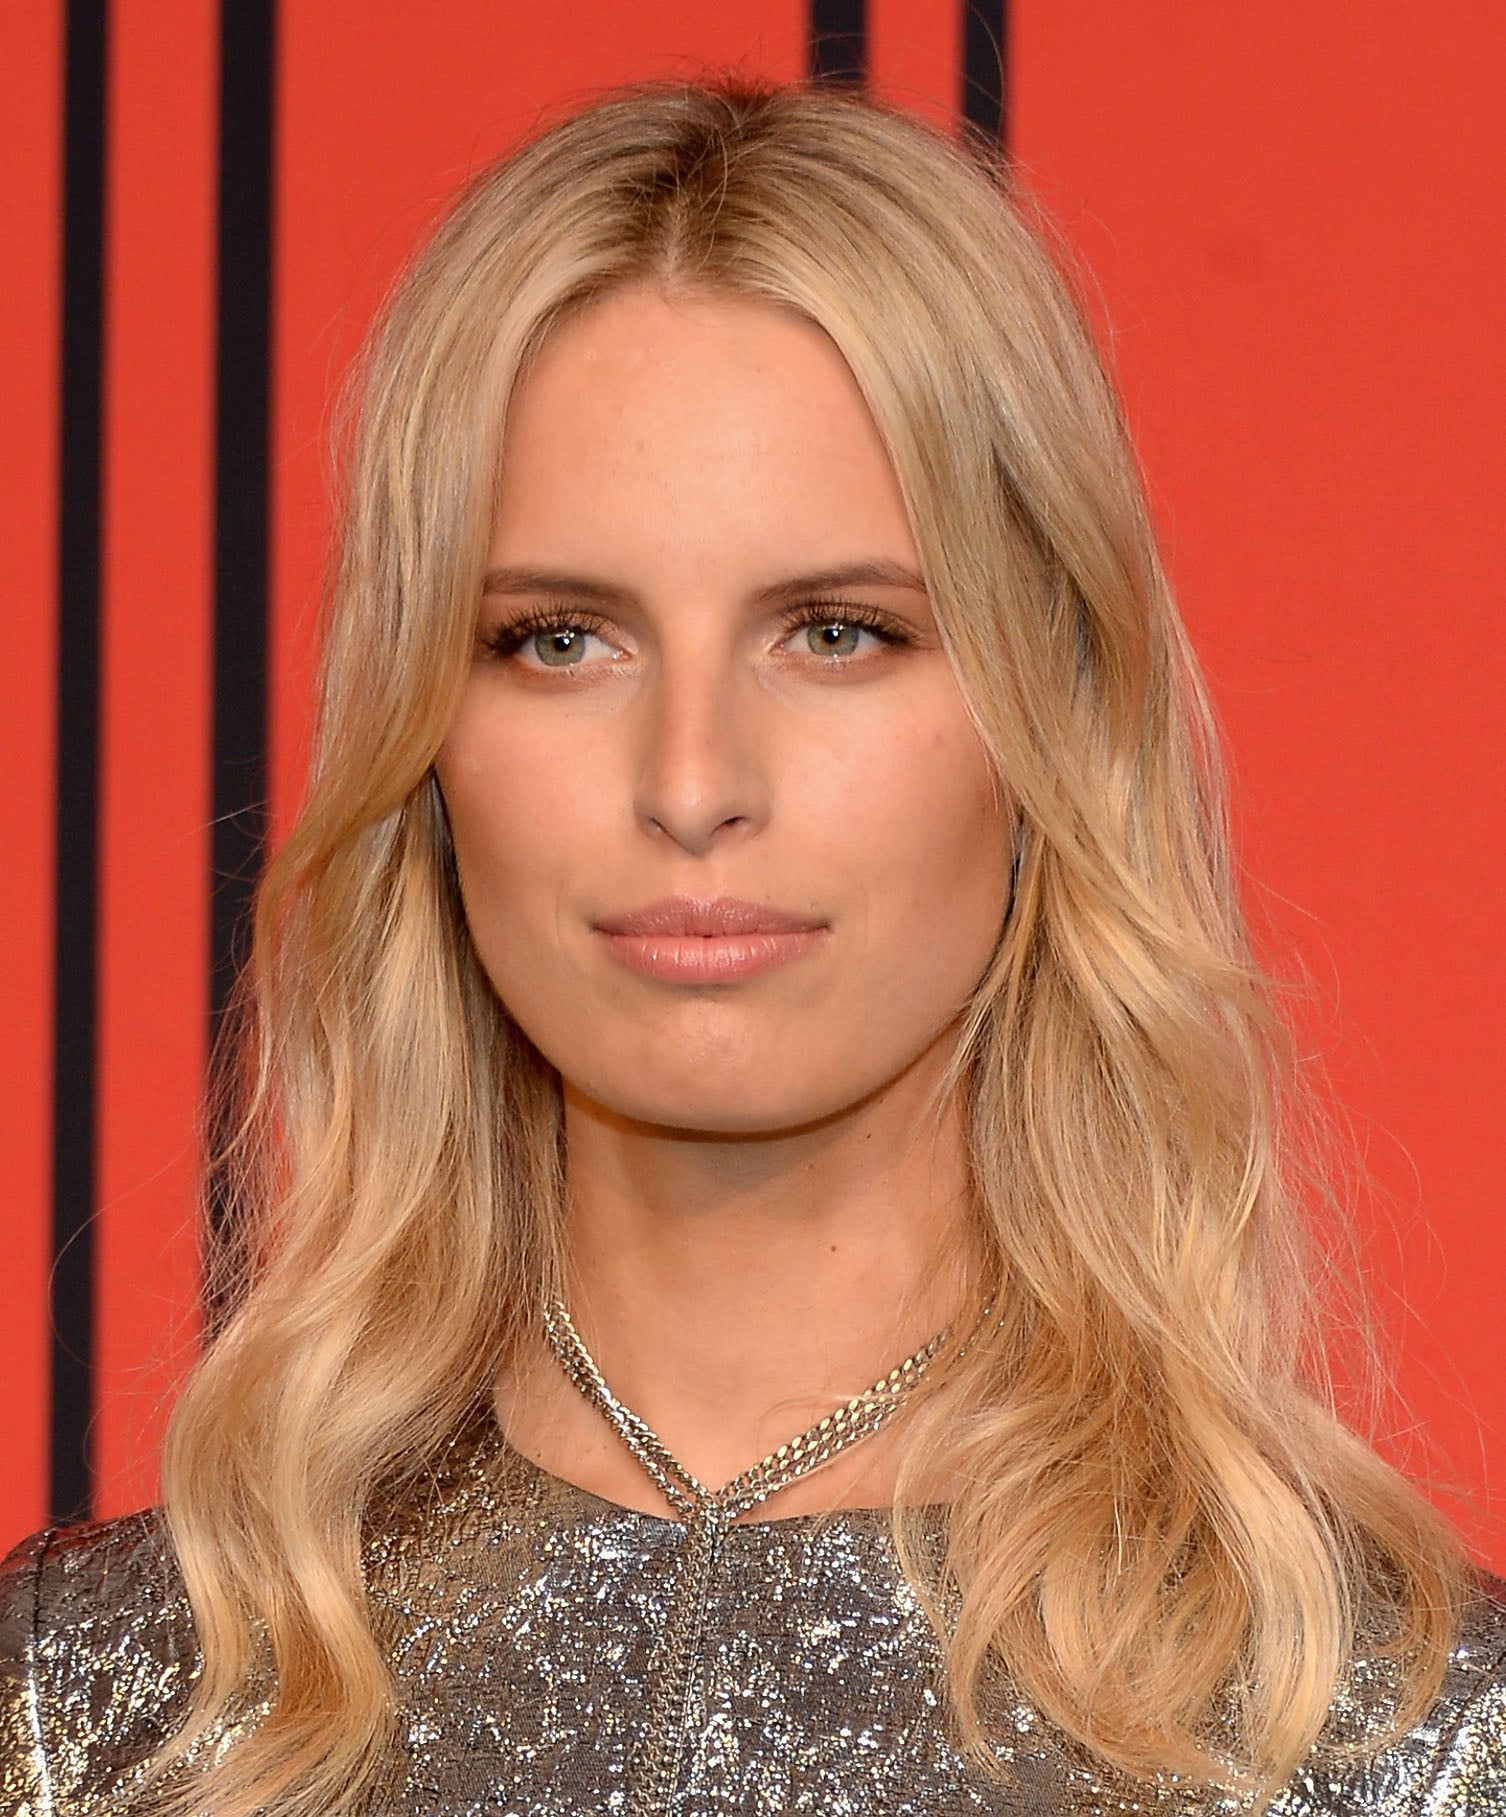 Karolina Kurkova surely inspired many Summer beauty looks with her buttery-blond waves and neutral makeup.